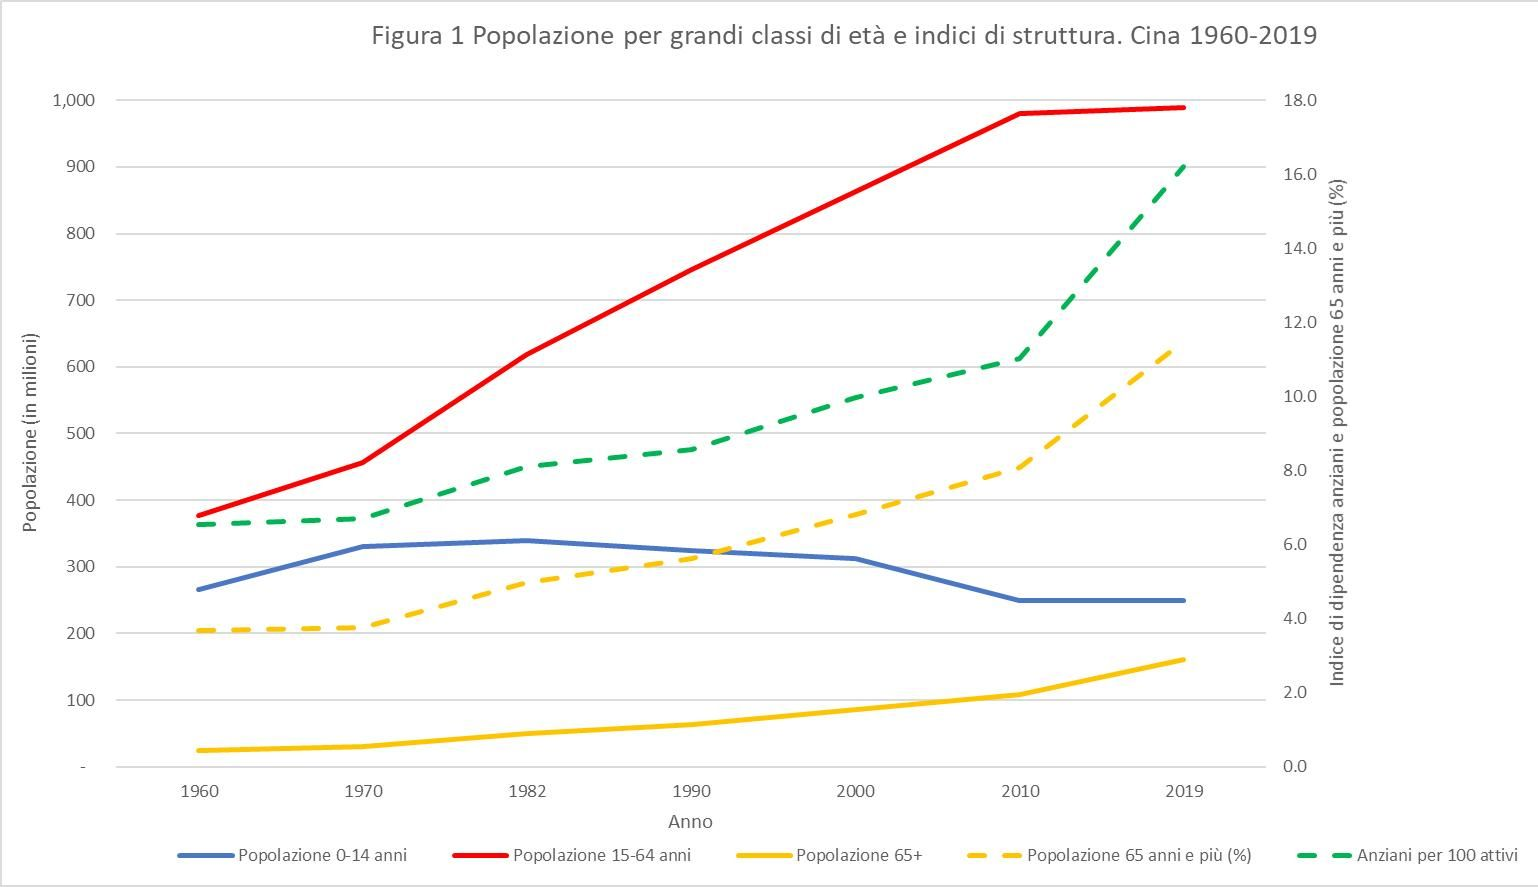 Fonte: China Statistical Yearbook, 2019